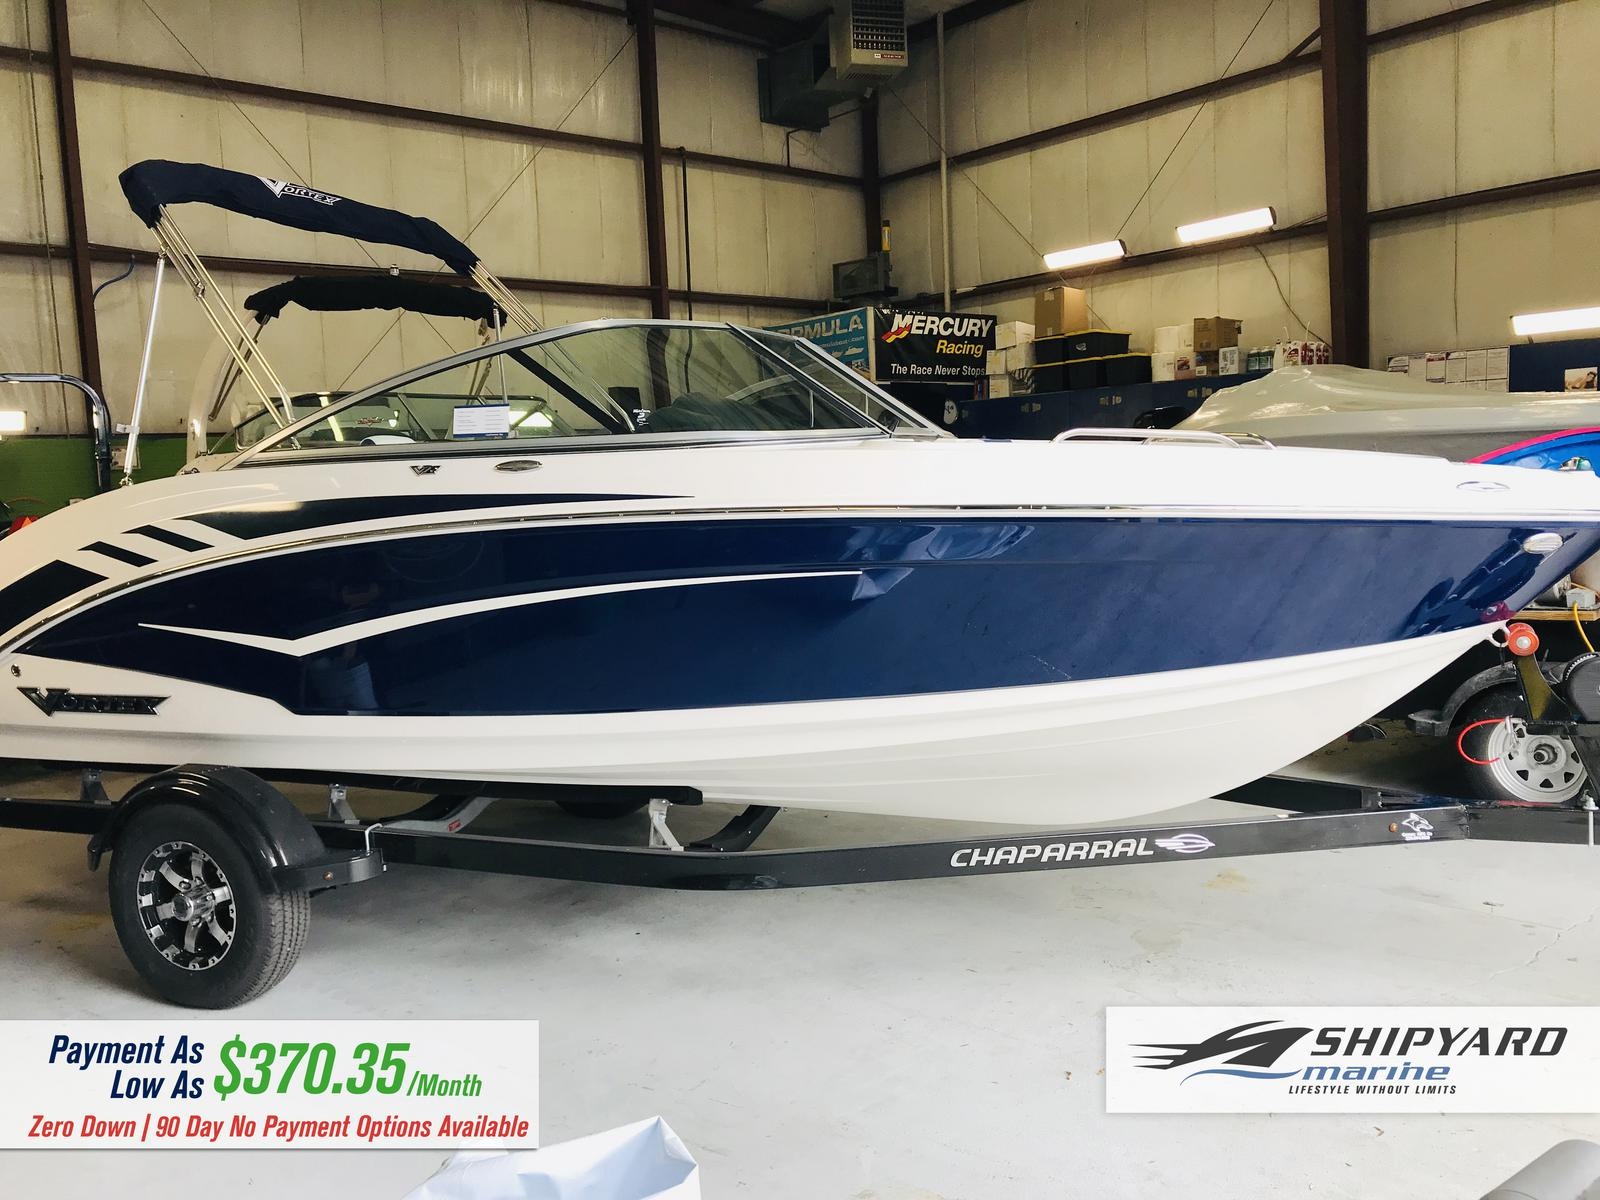 Inventory from Vortex Boats and Donzi Shipyard Marine